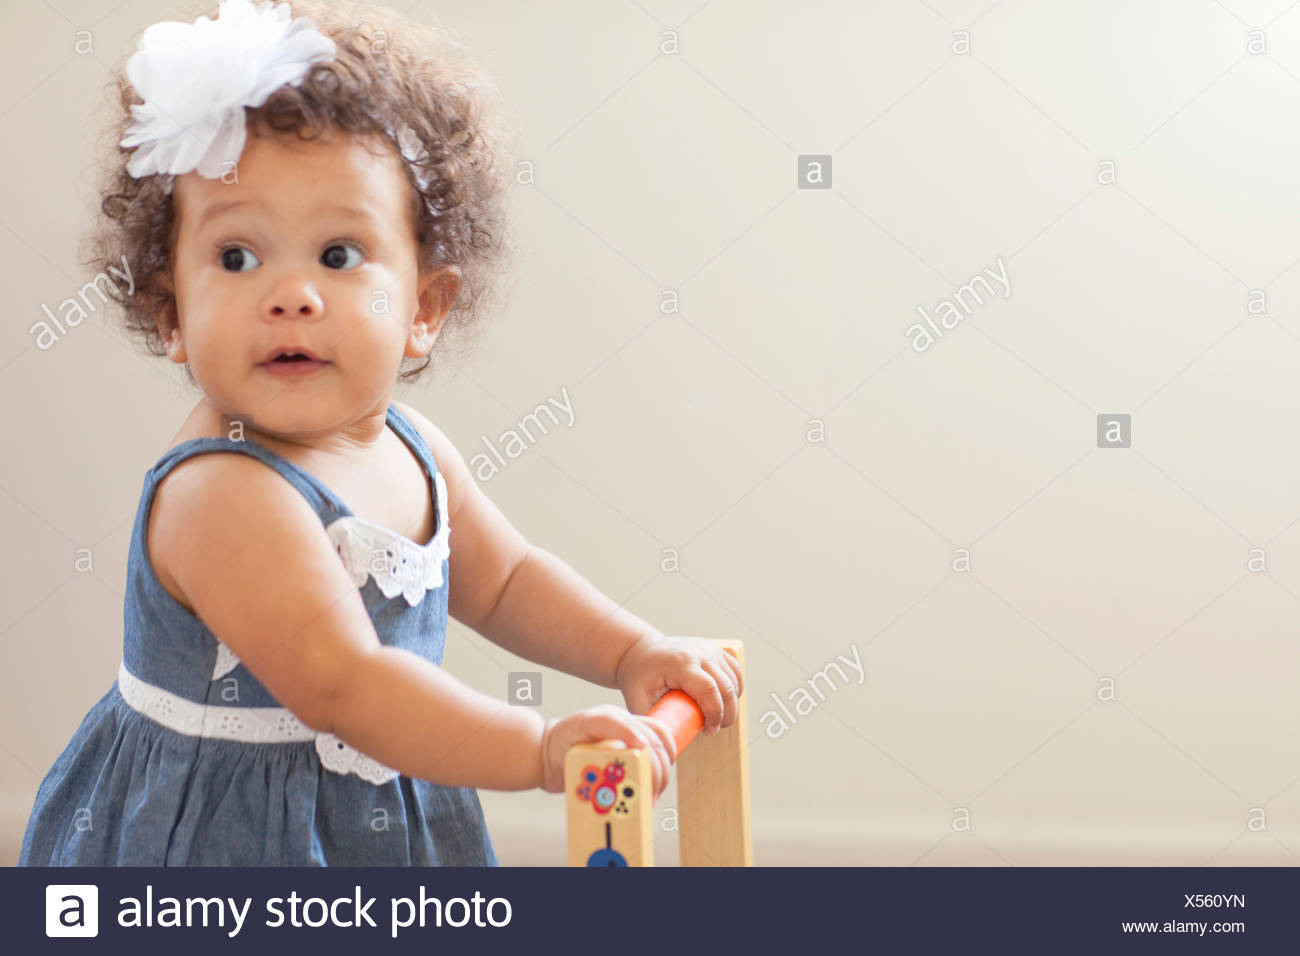 Portrait of baby girl, pushing baby walker - Stock Image